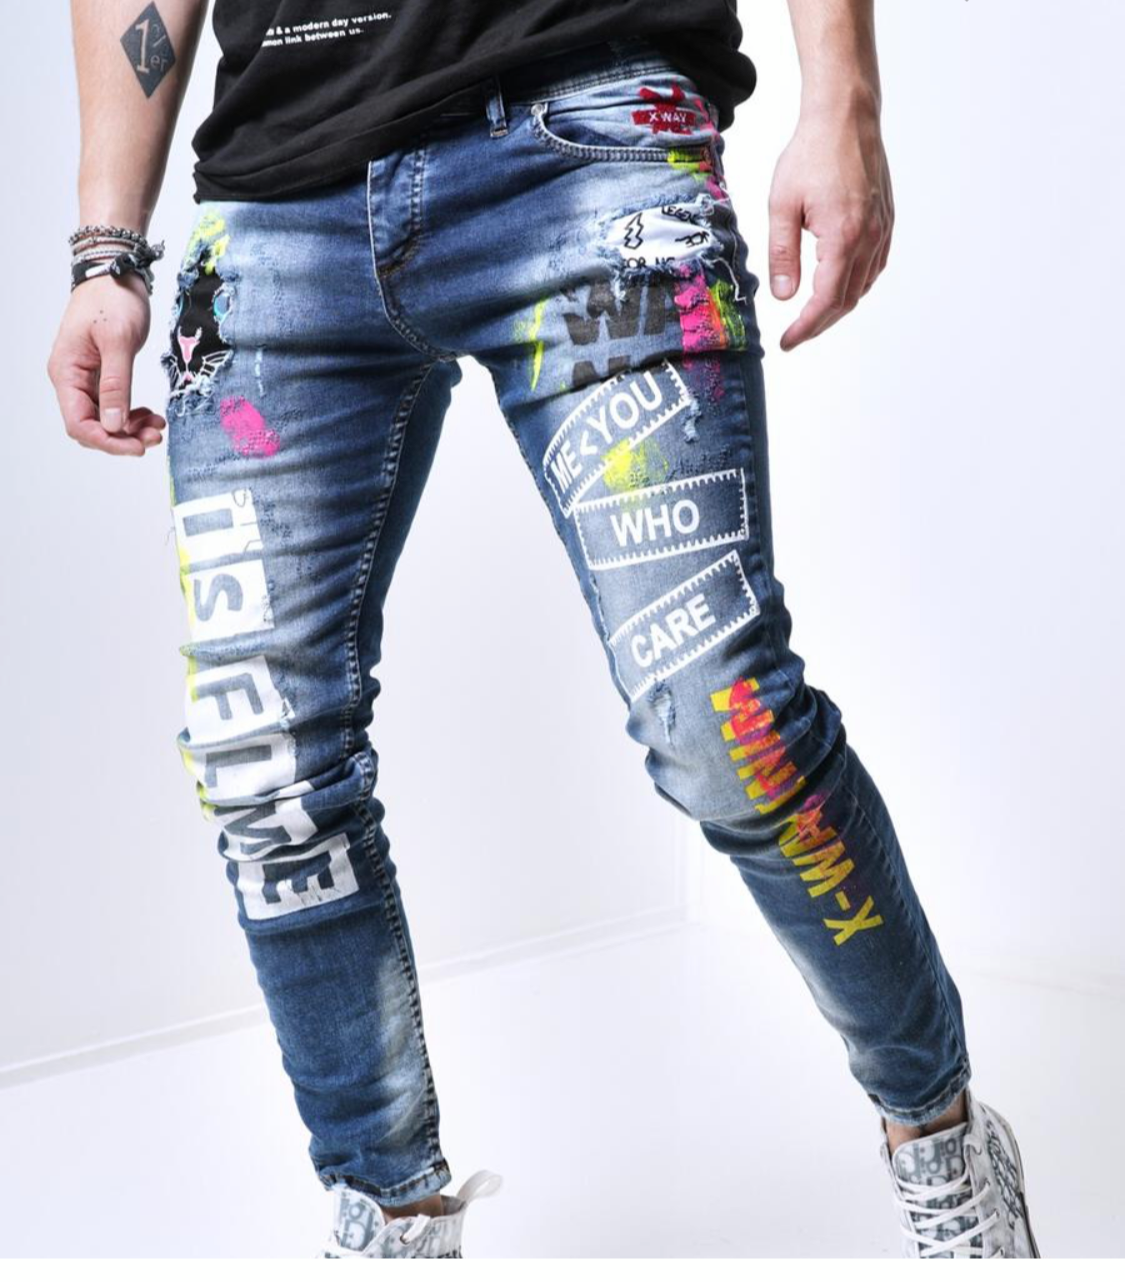 Sernes Brand Men's Iced Out Jeans Pants